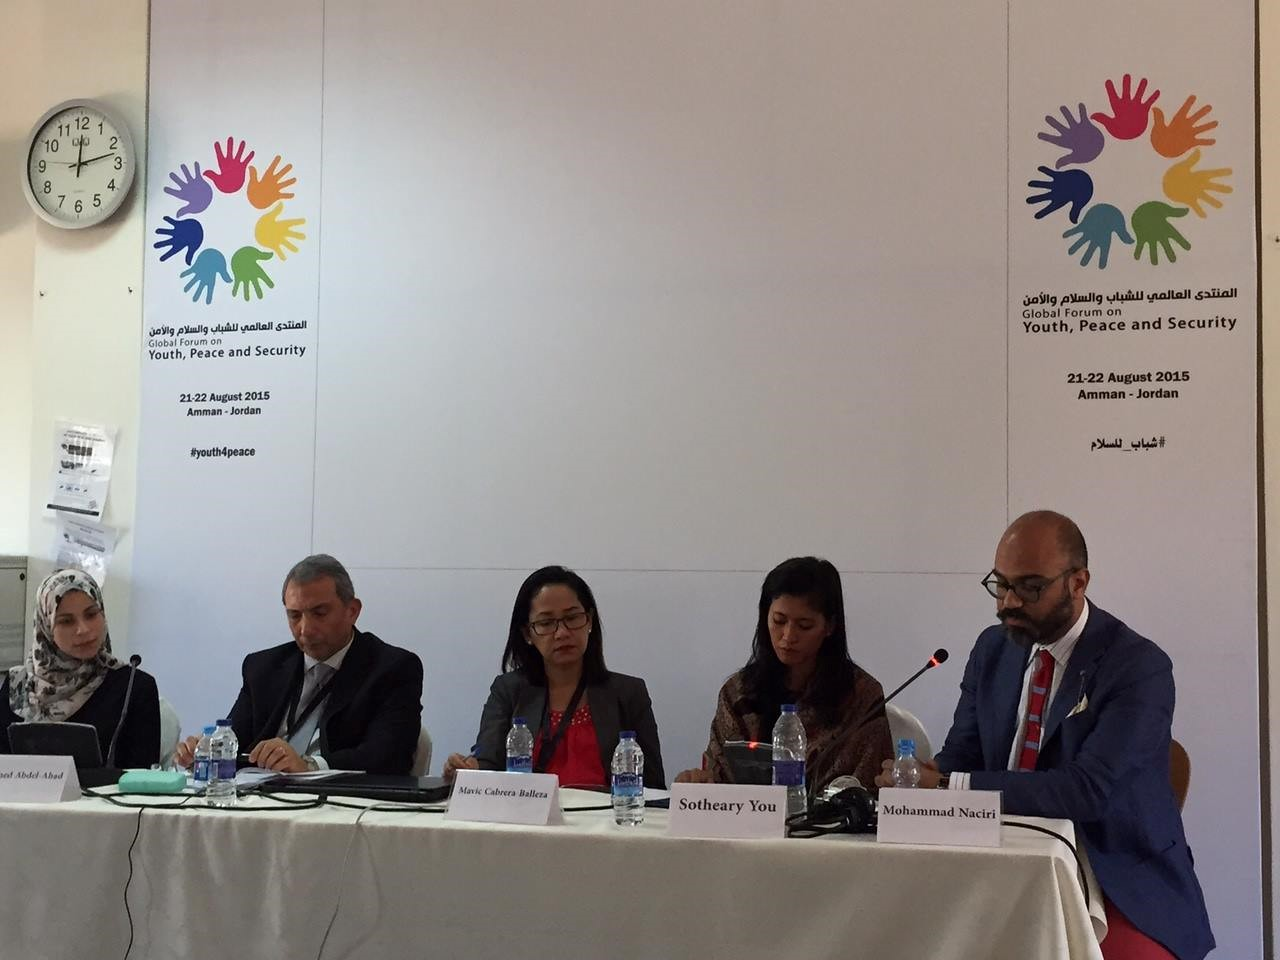 UN Women commits to better include youth in the discourse on peace and security